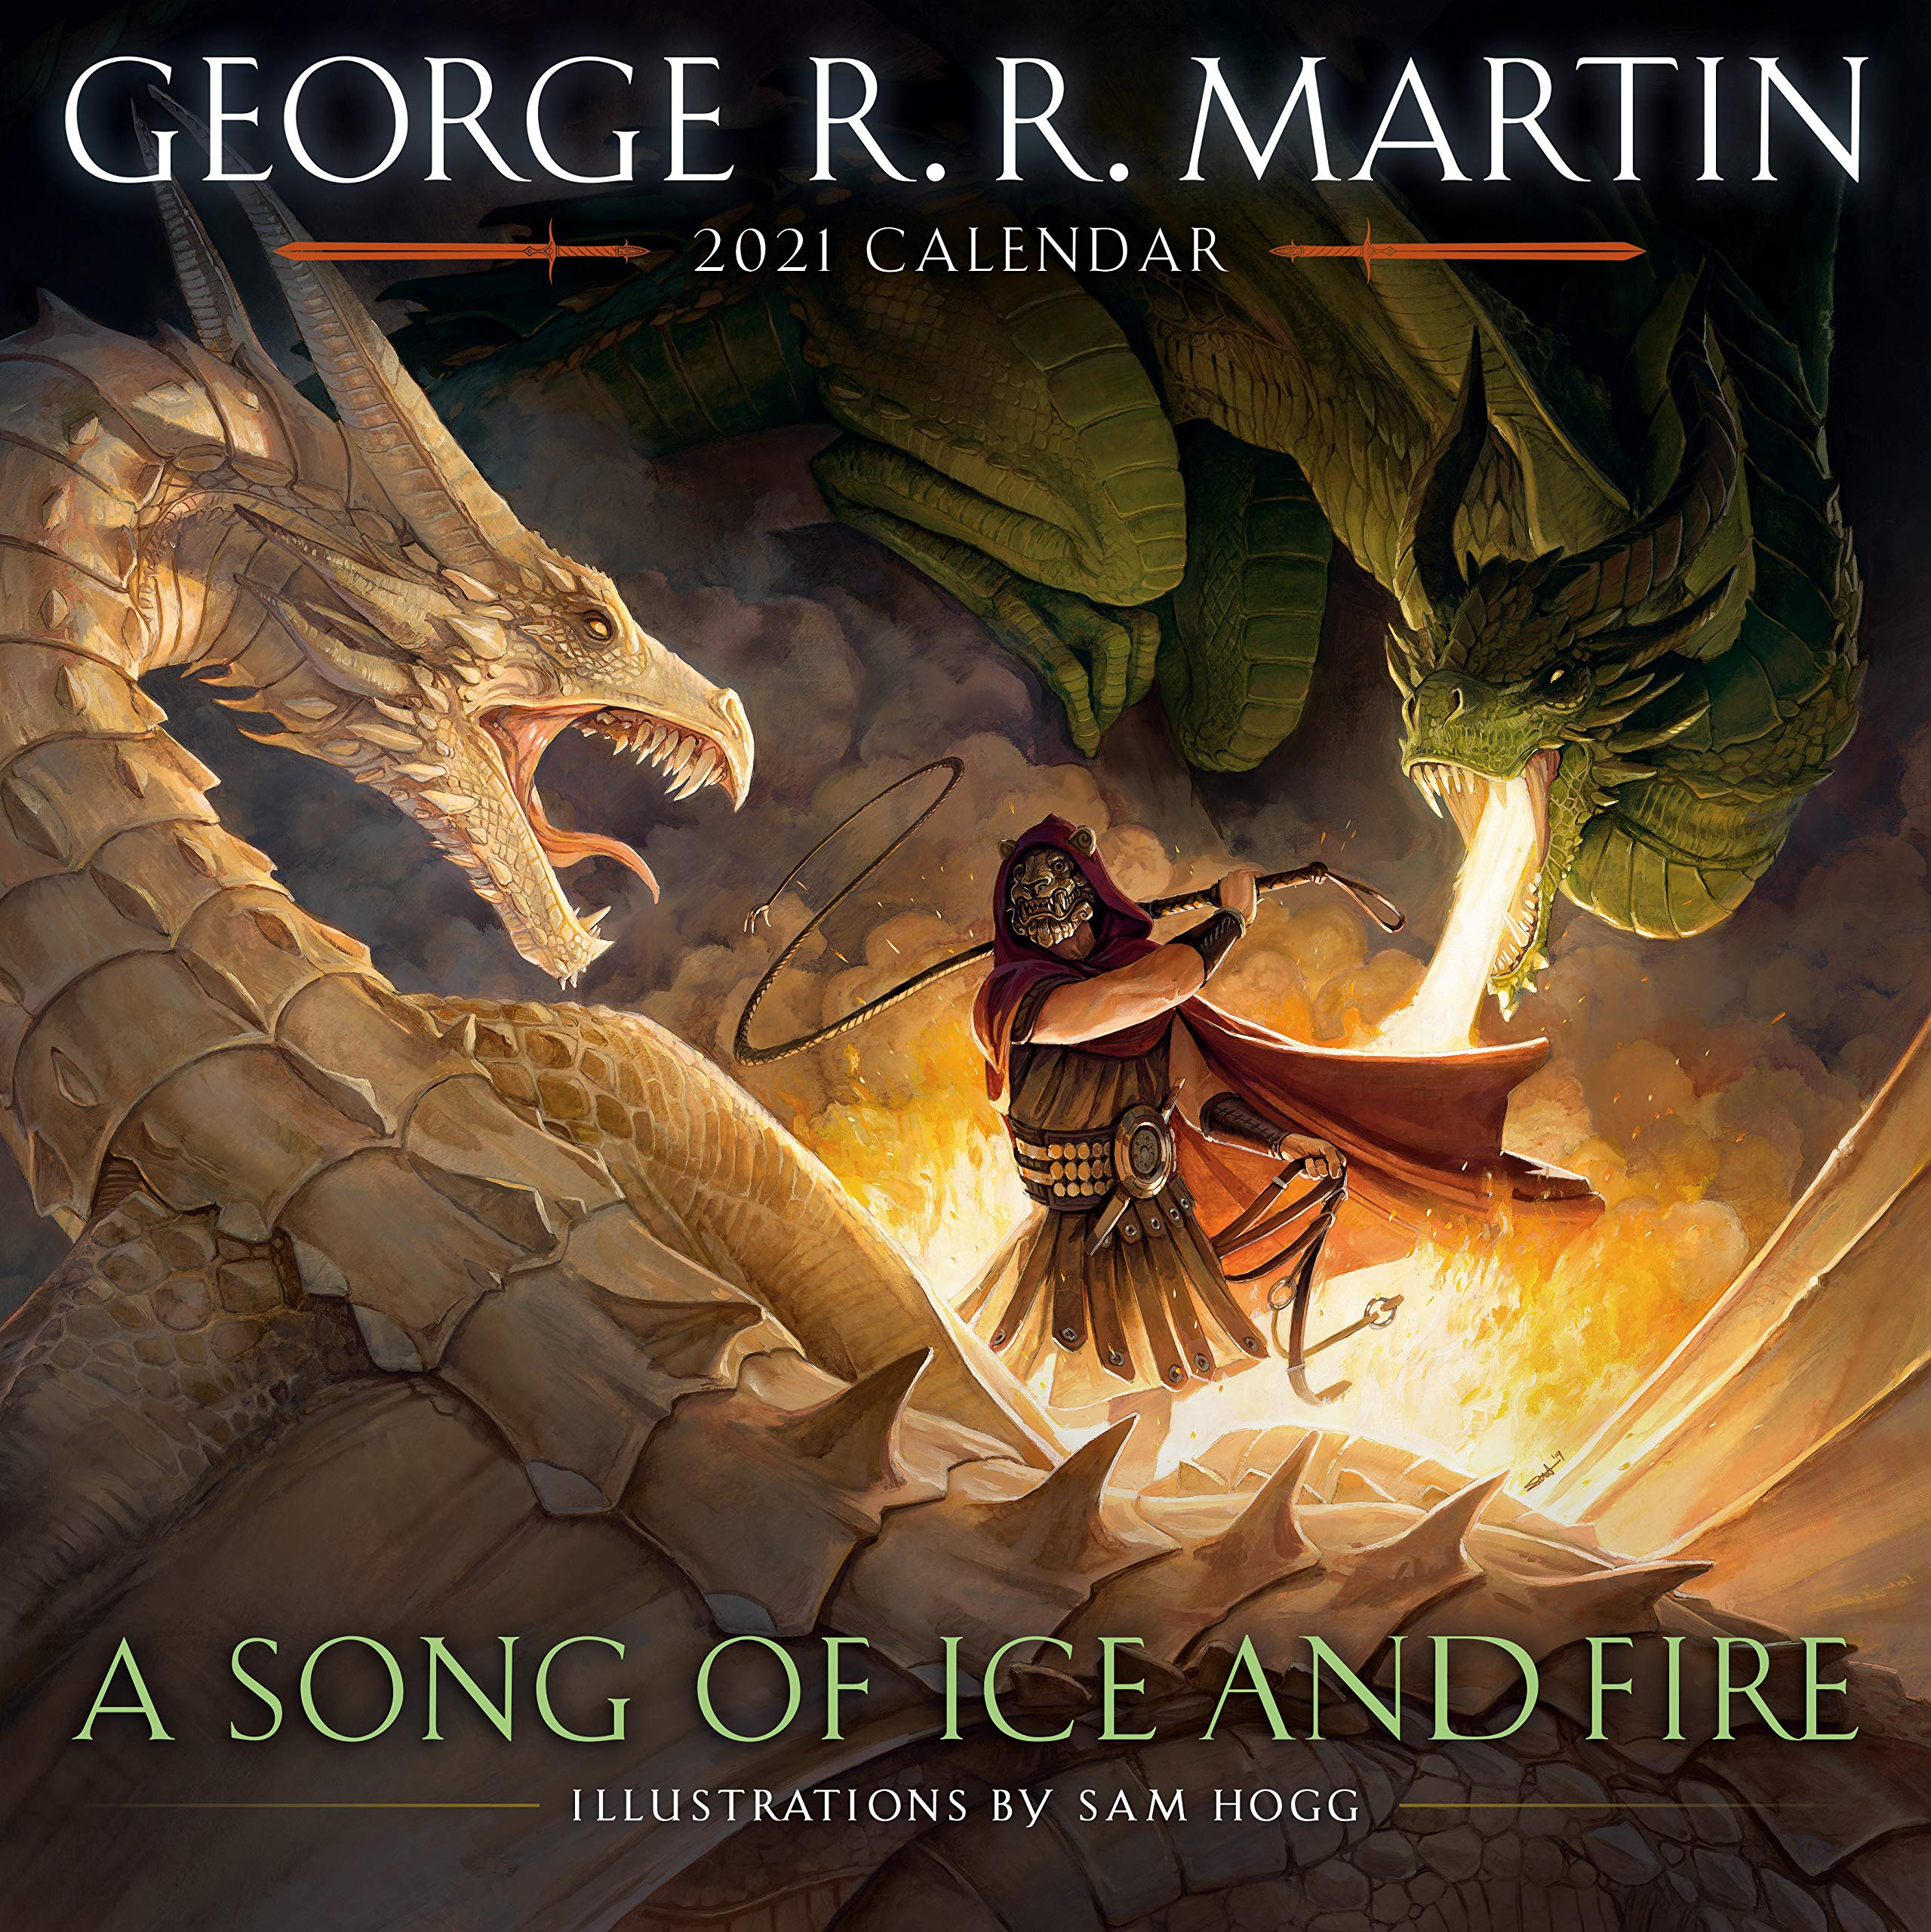 Calendrier Serie Us 2022 A Song of Ice and Fire 2021 Calendar: Illustrations by Sam Hogg